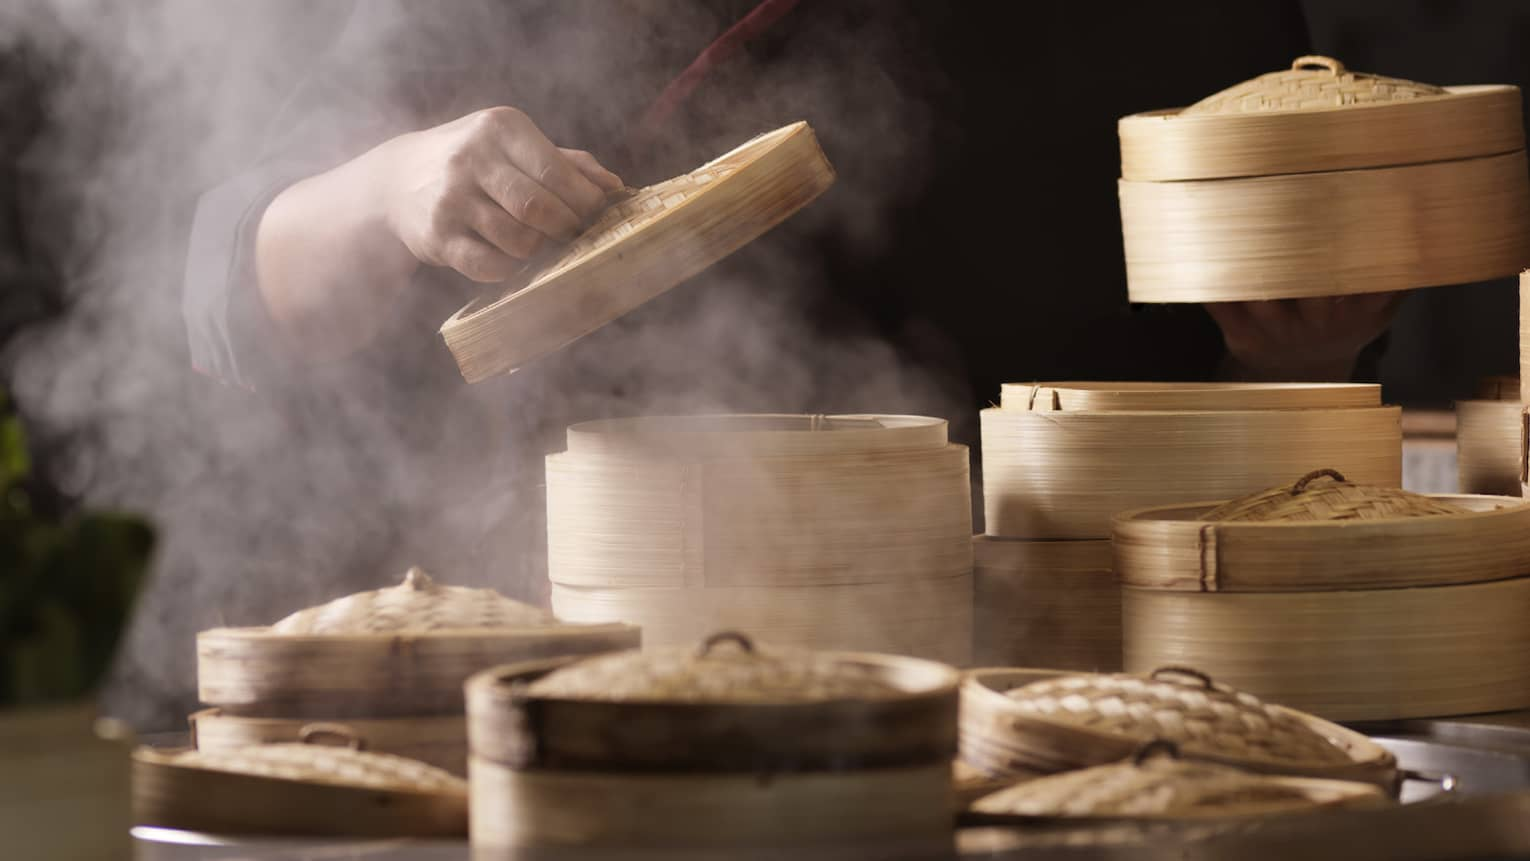 Man lifts top of bamboo steamer, steam rises at Sintoho Dim Sum Station